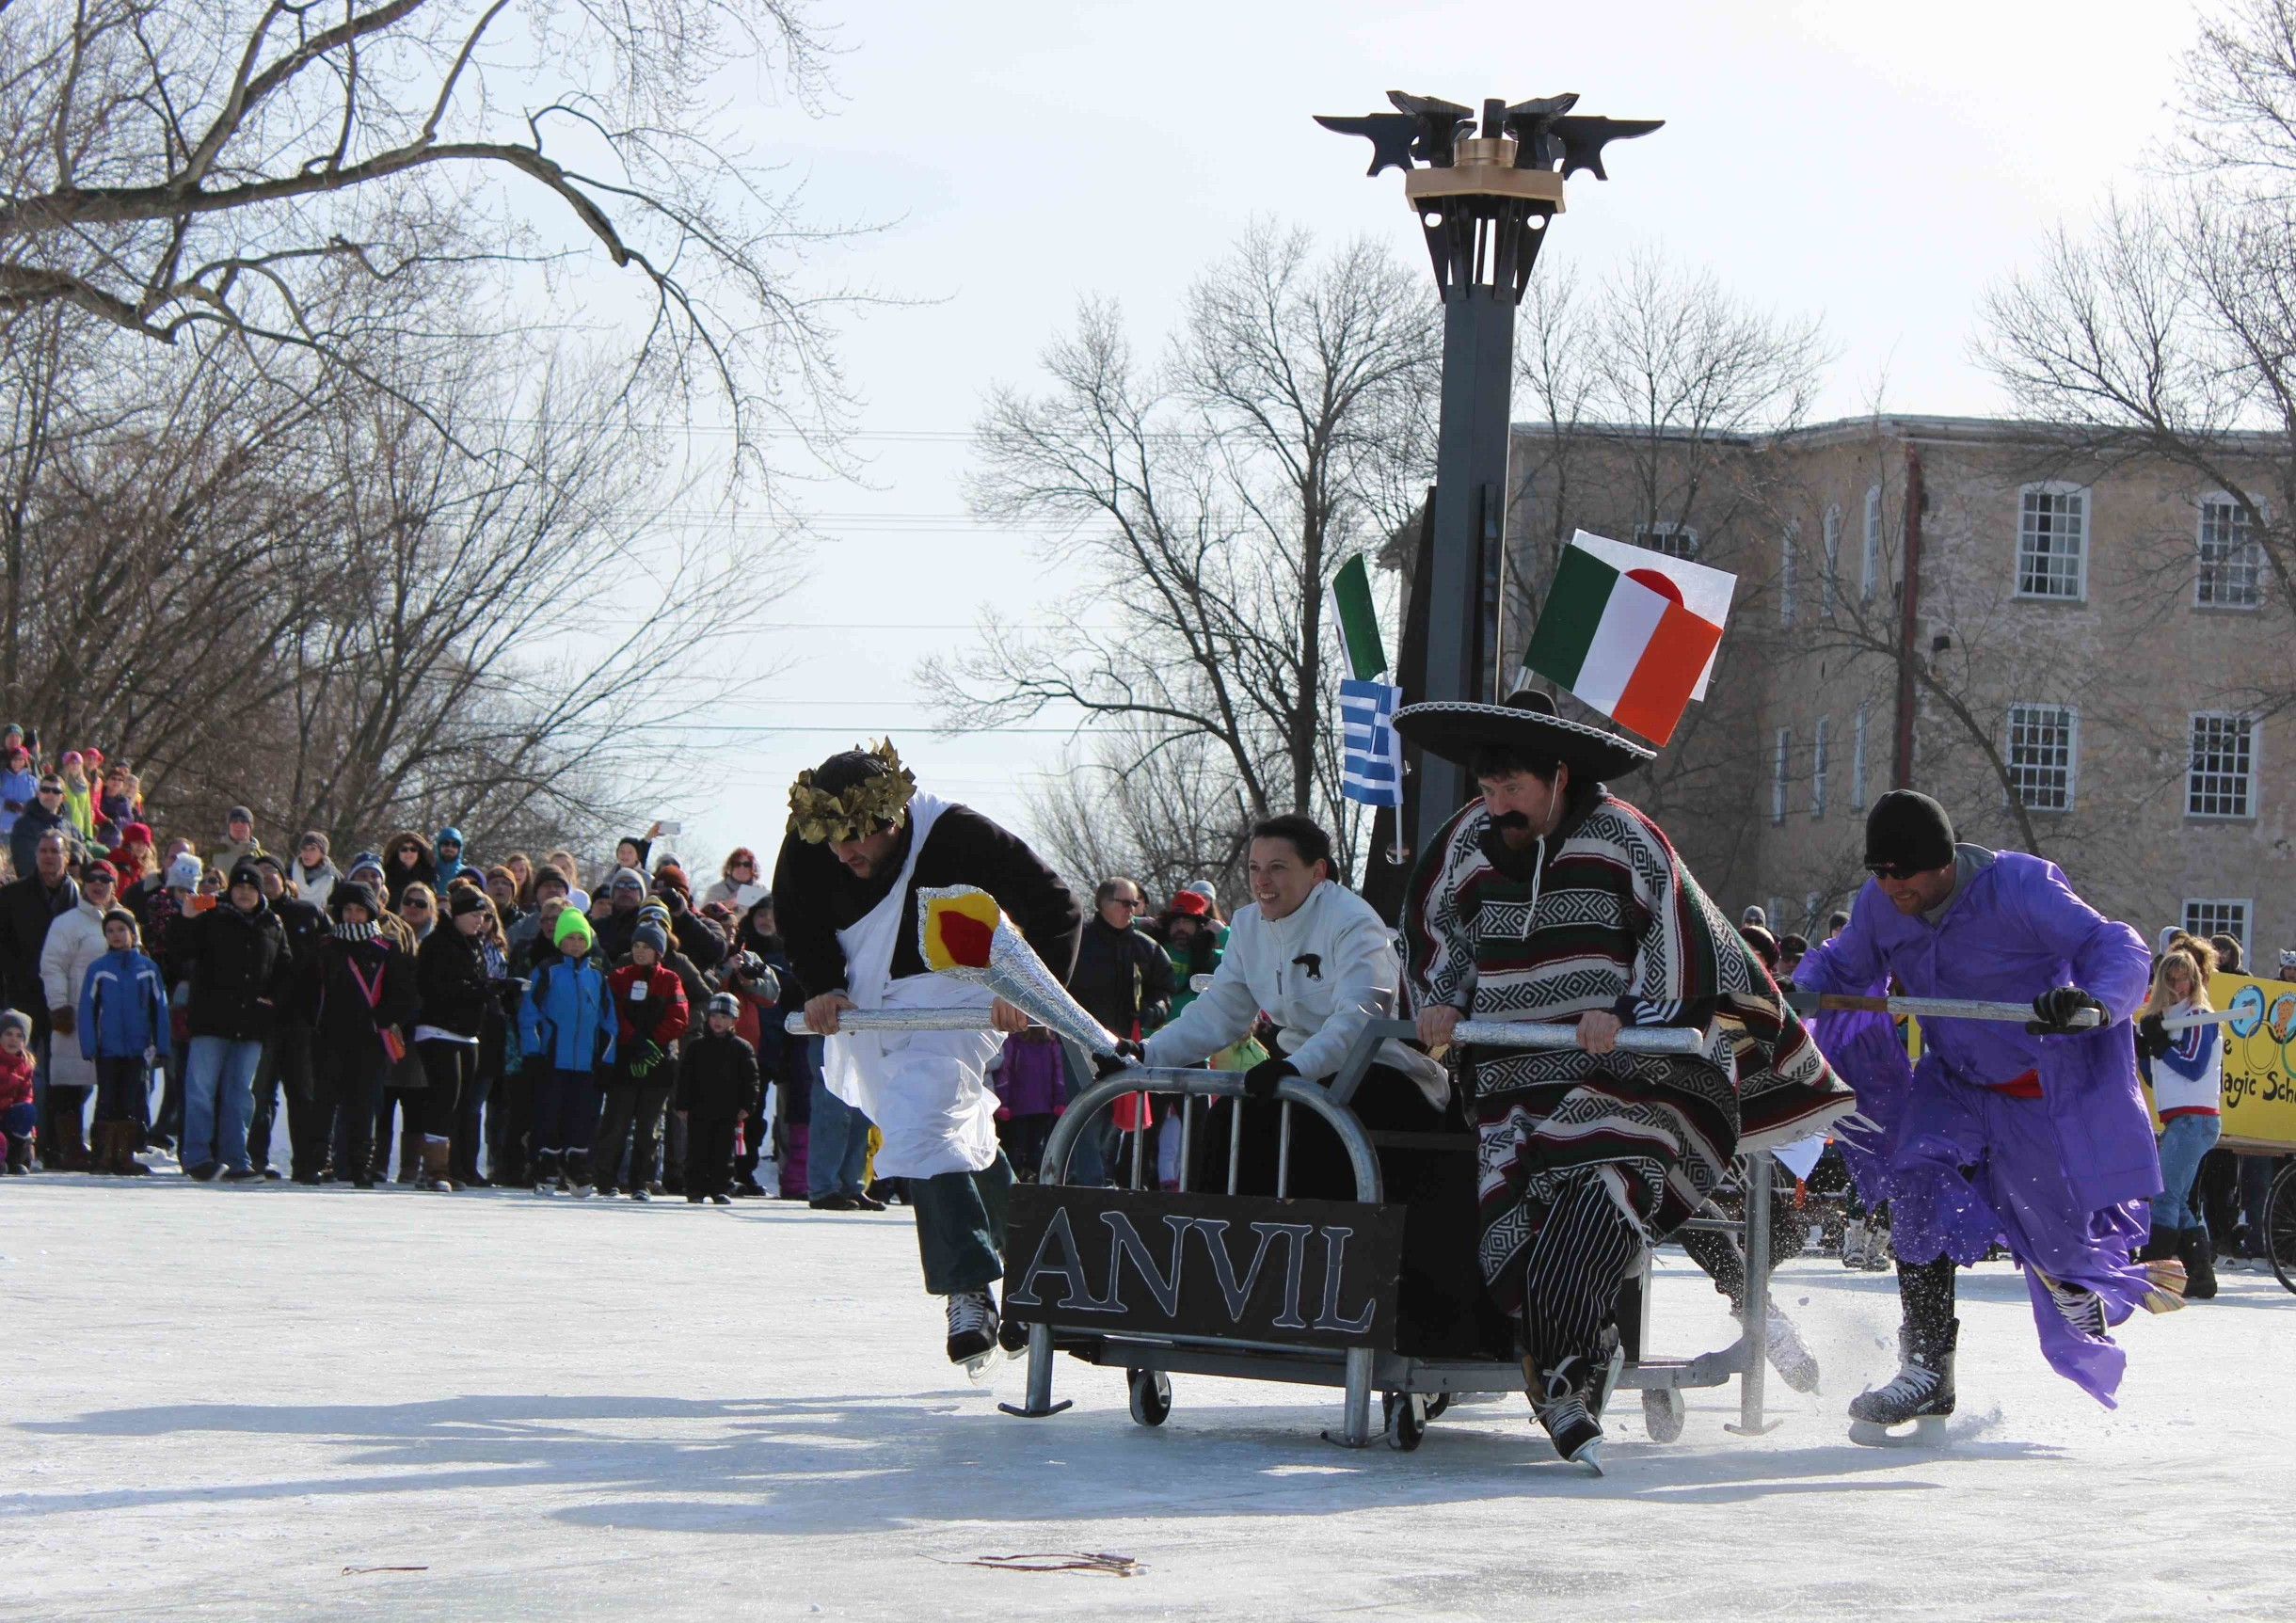 Anvil-bed-race-team-2014-w2592-w2440.jpg